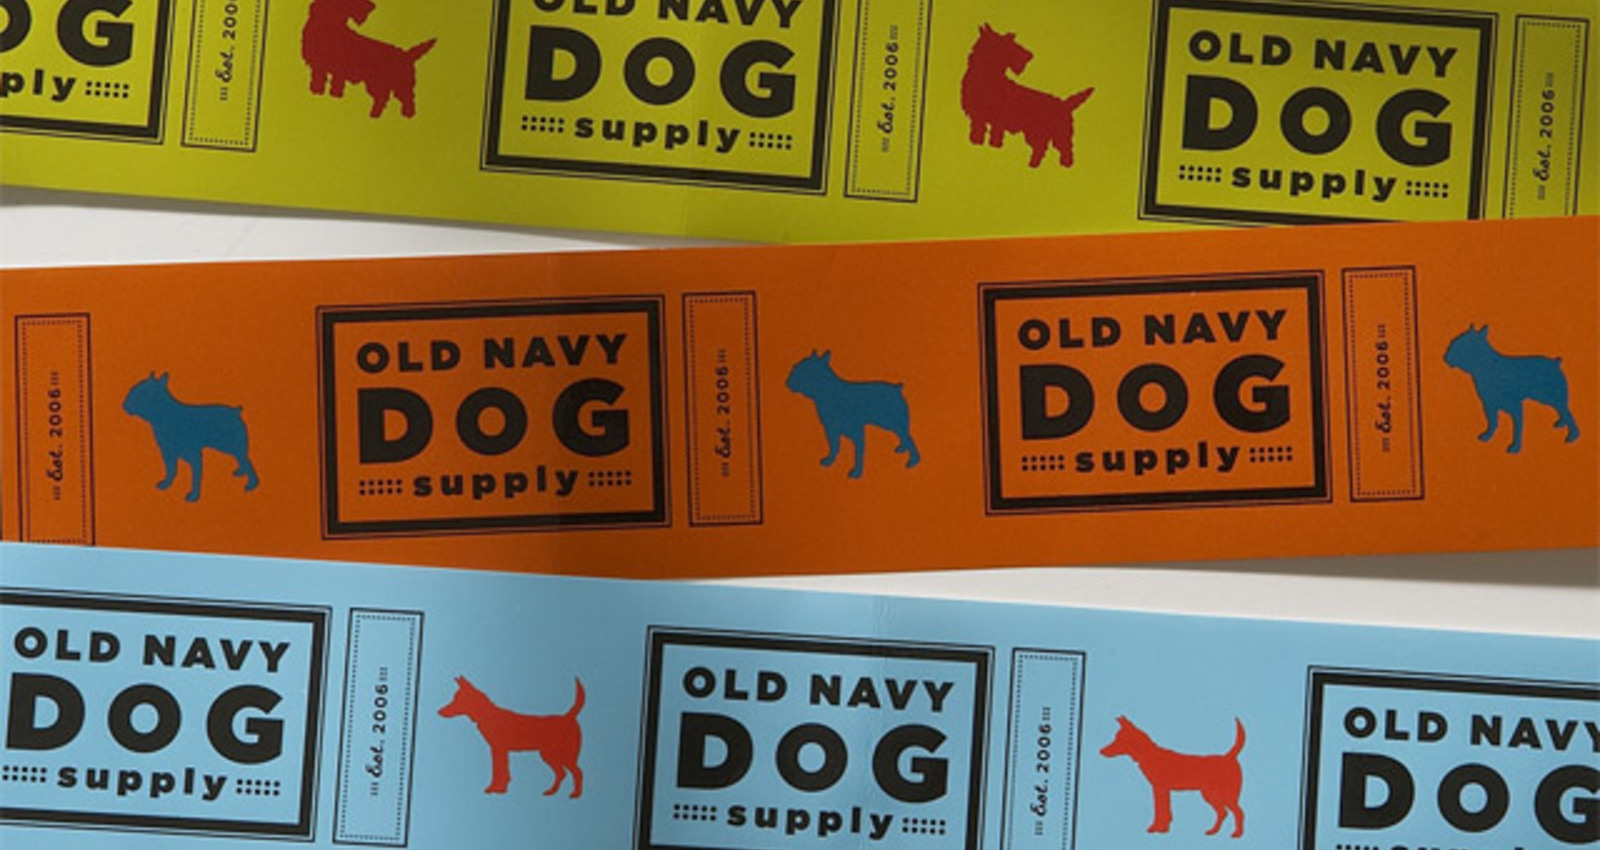 Packaging for Old Navy Dog Supply